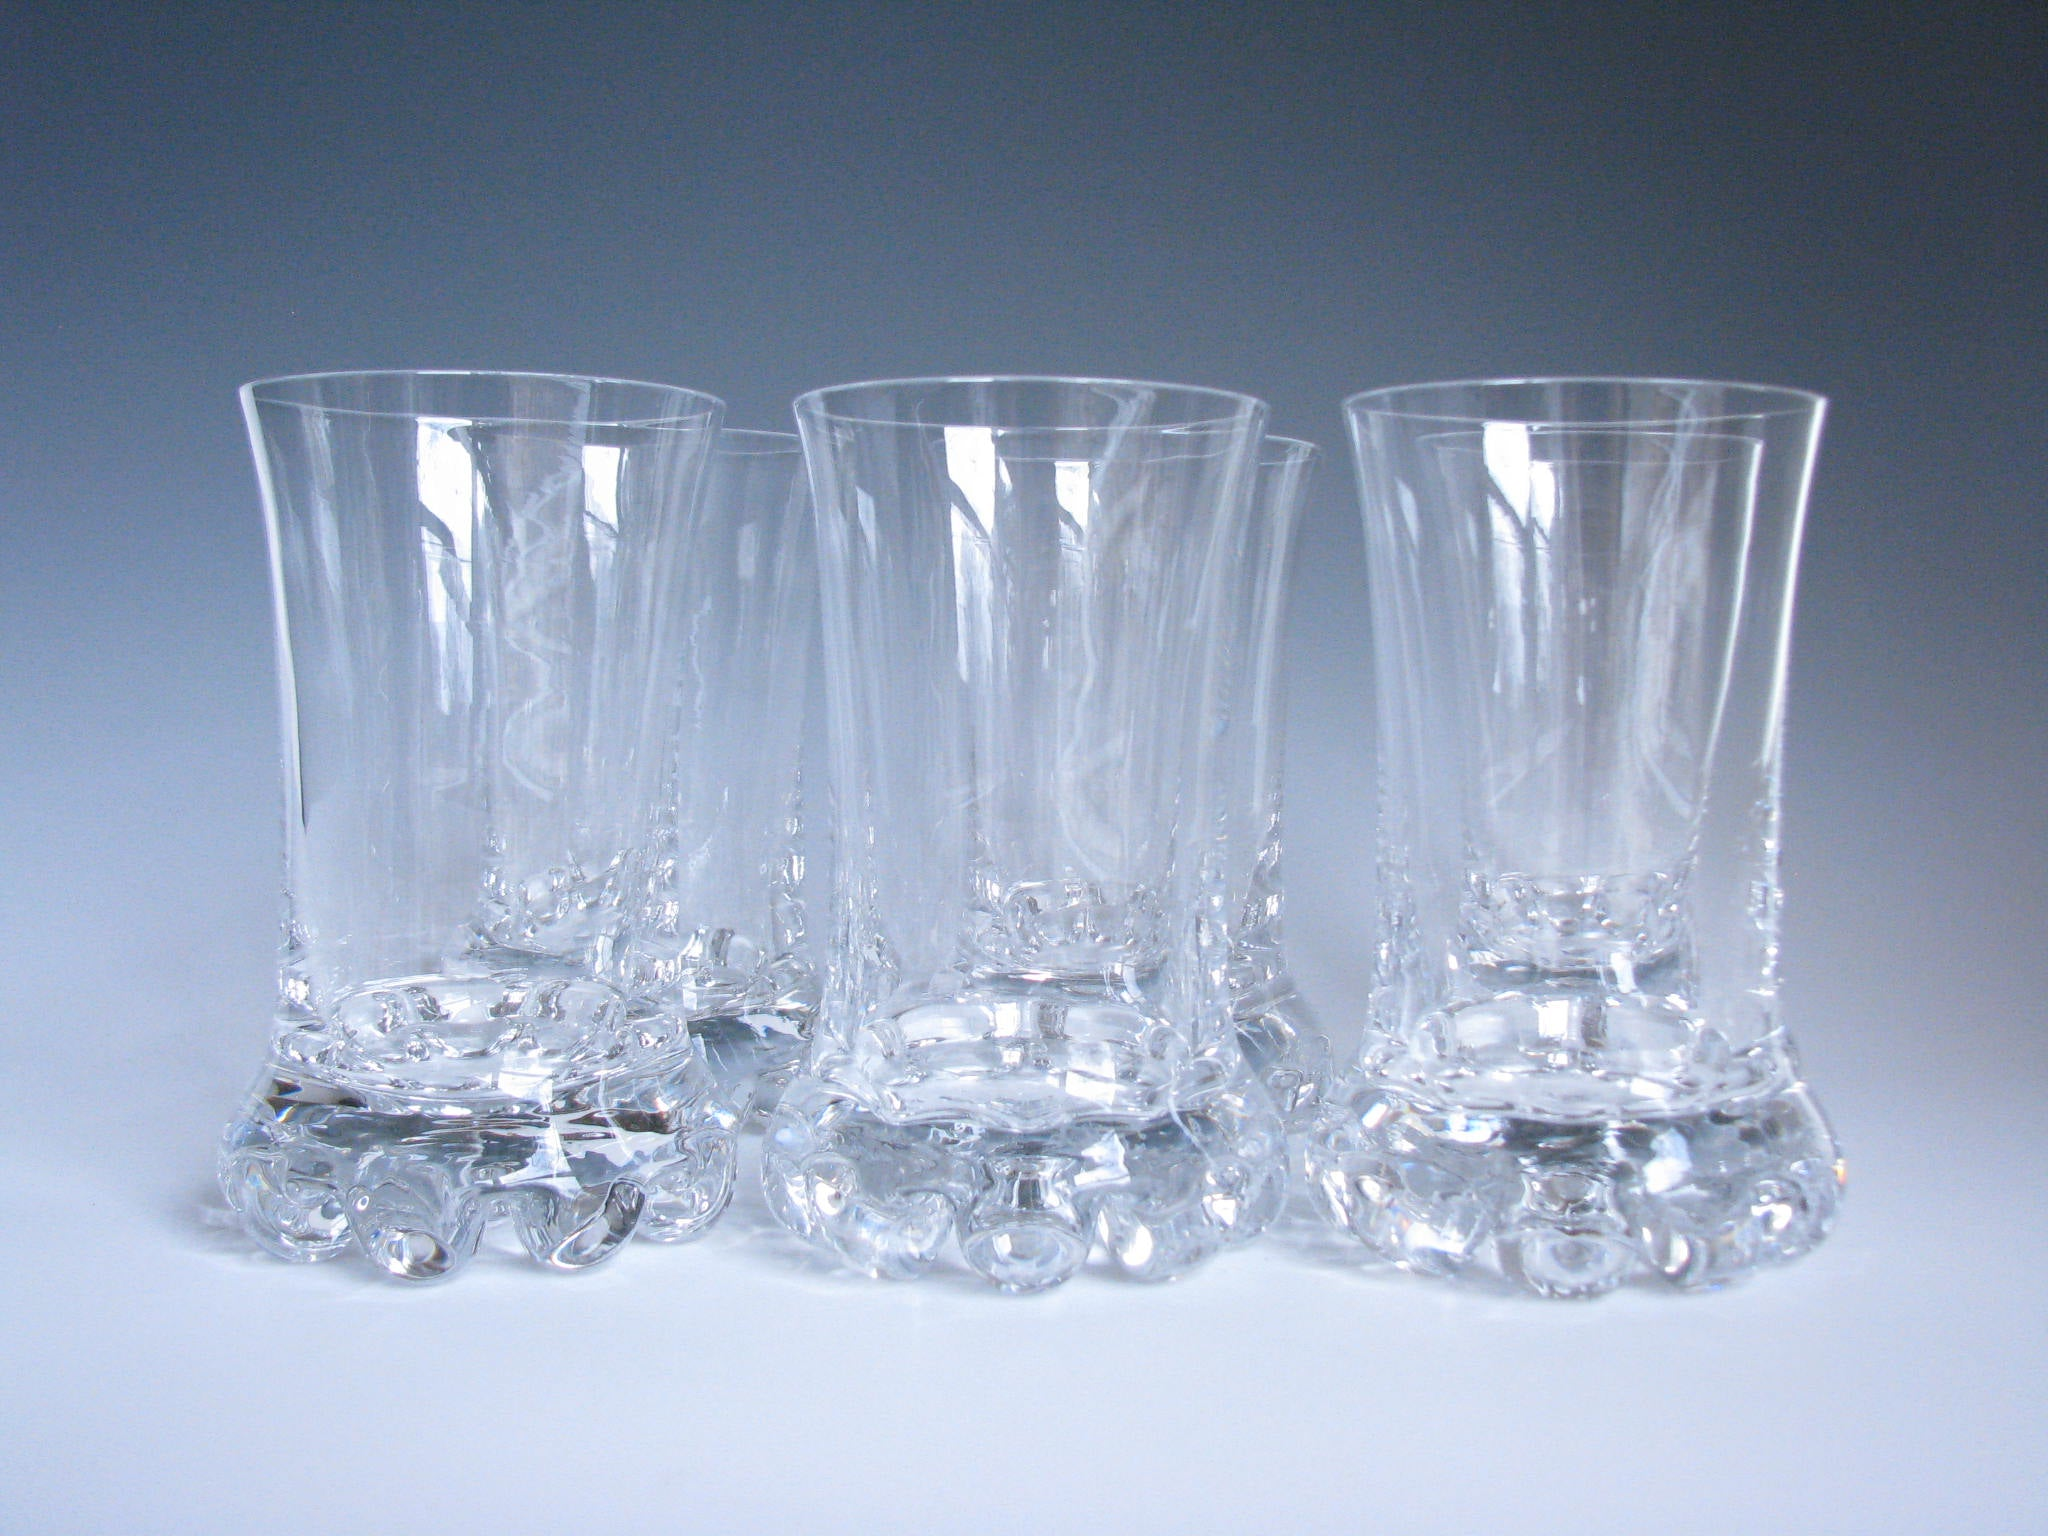 edgebrookhouse - Vintage Kosta Boda Buster Hiball Glasses - Set of 6